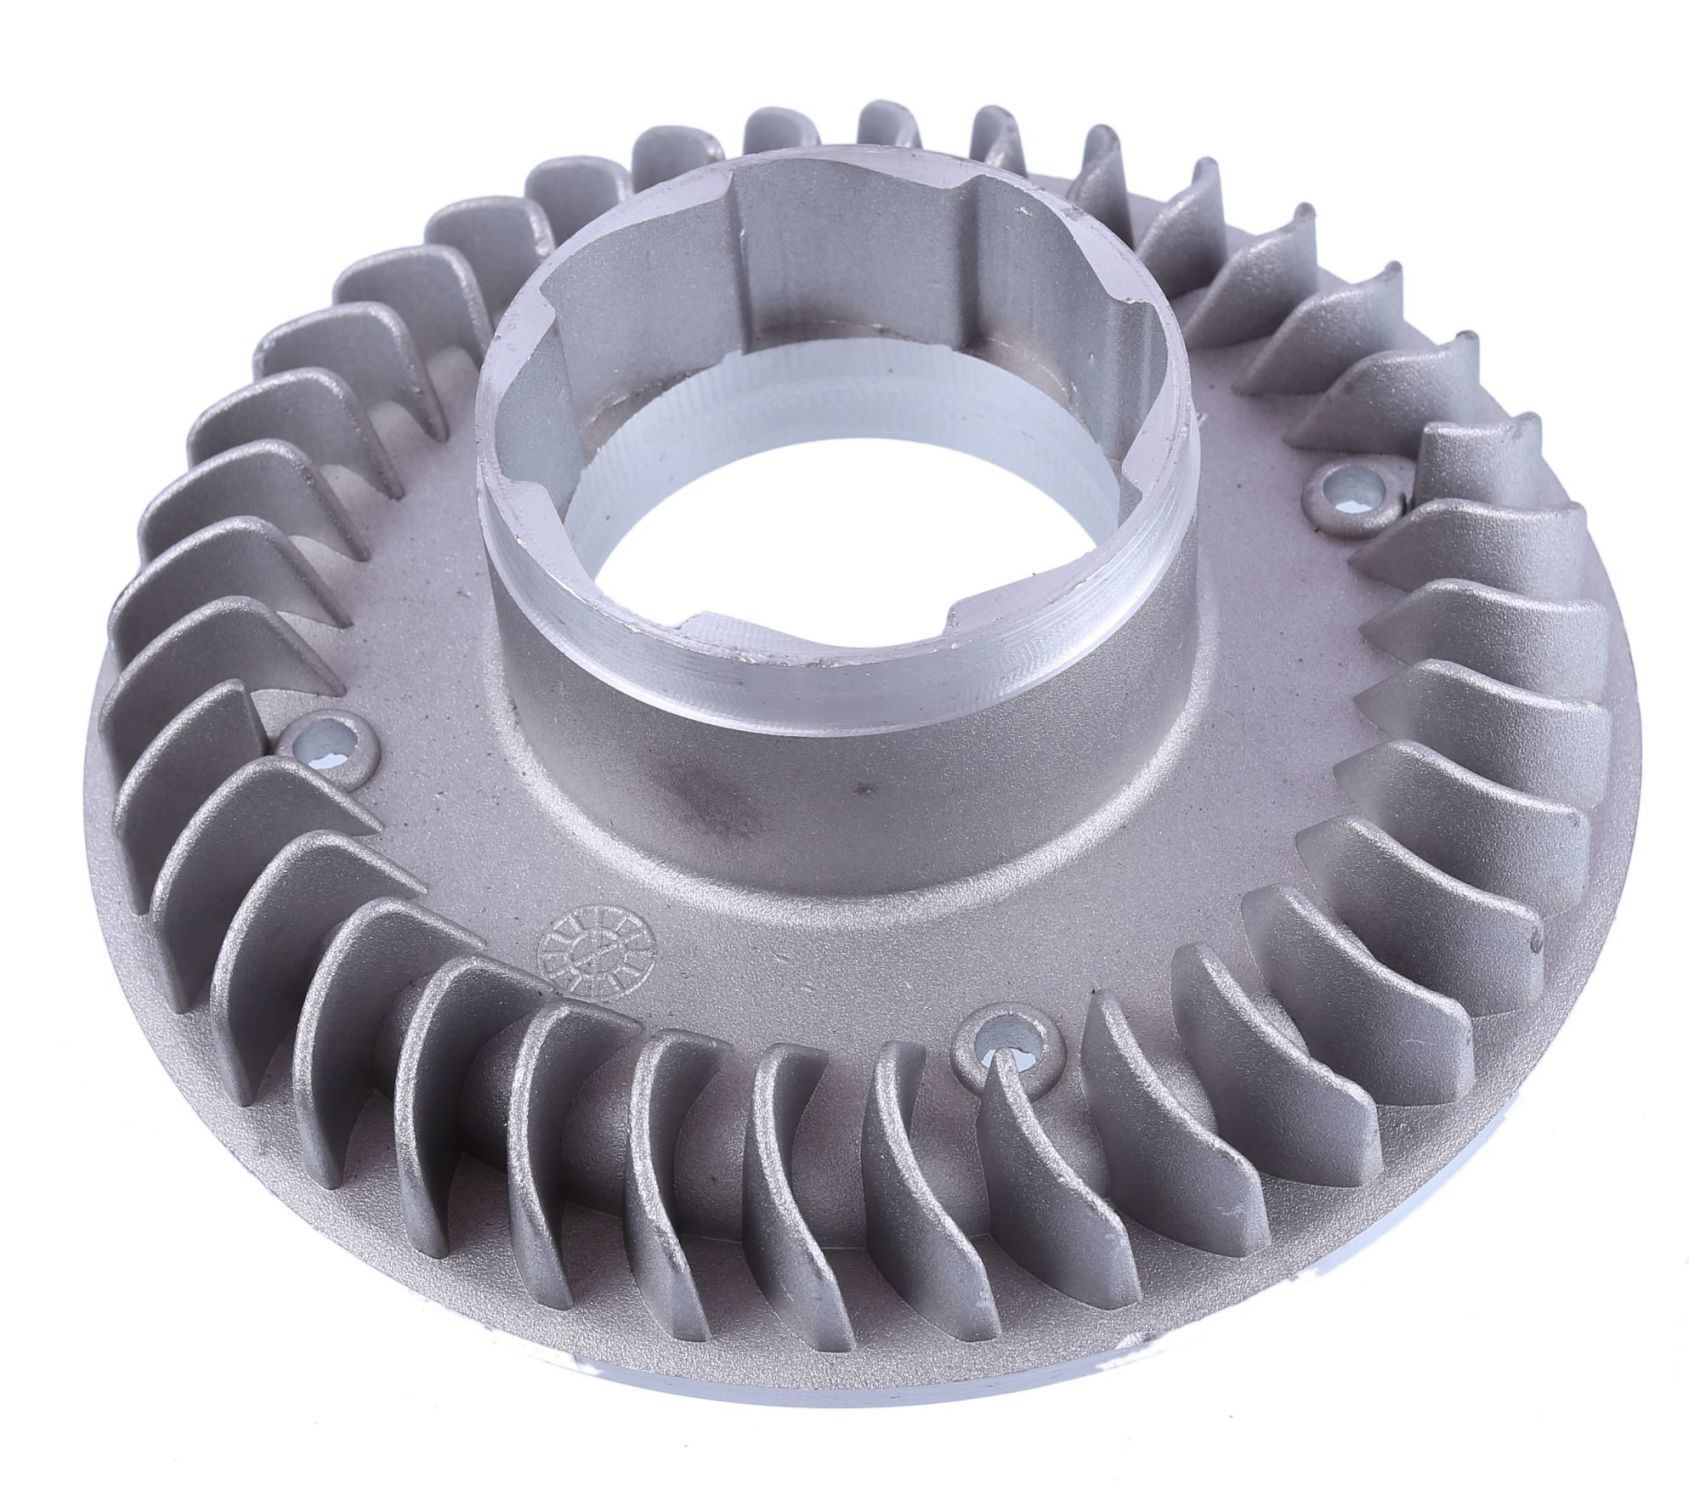 Chain Saw 070 Spare Parts Fanwheel